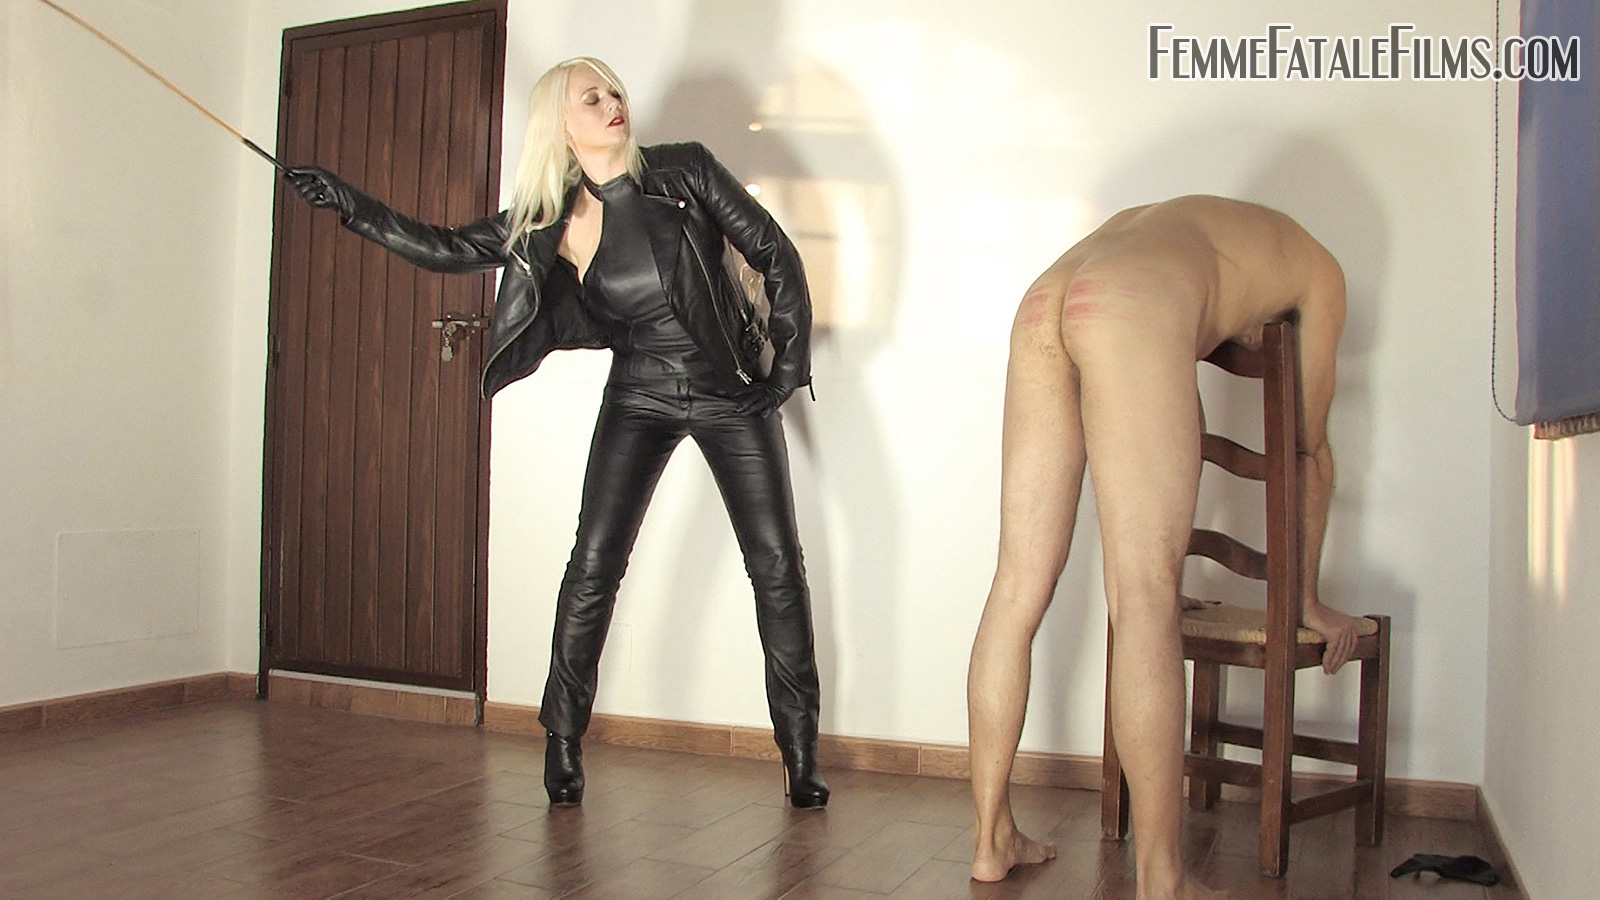 Goddess Heather Divine severely canes her slave